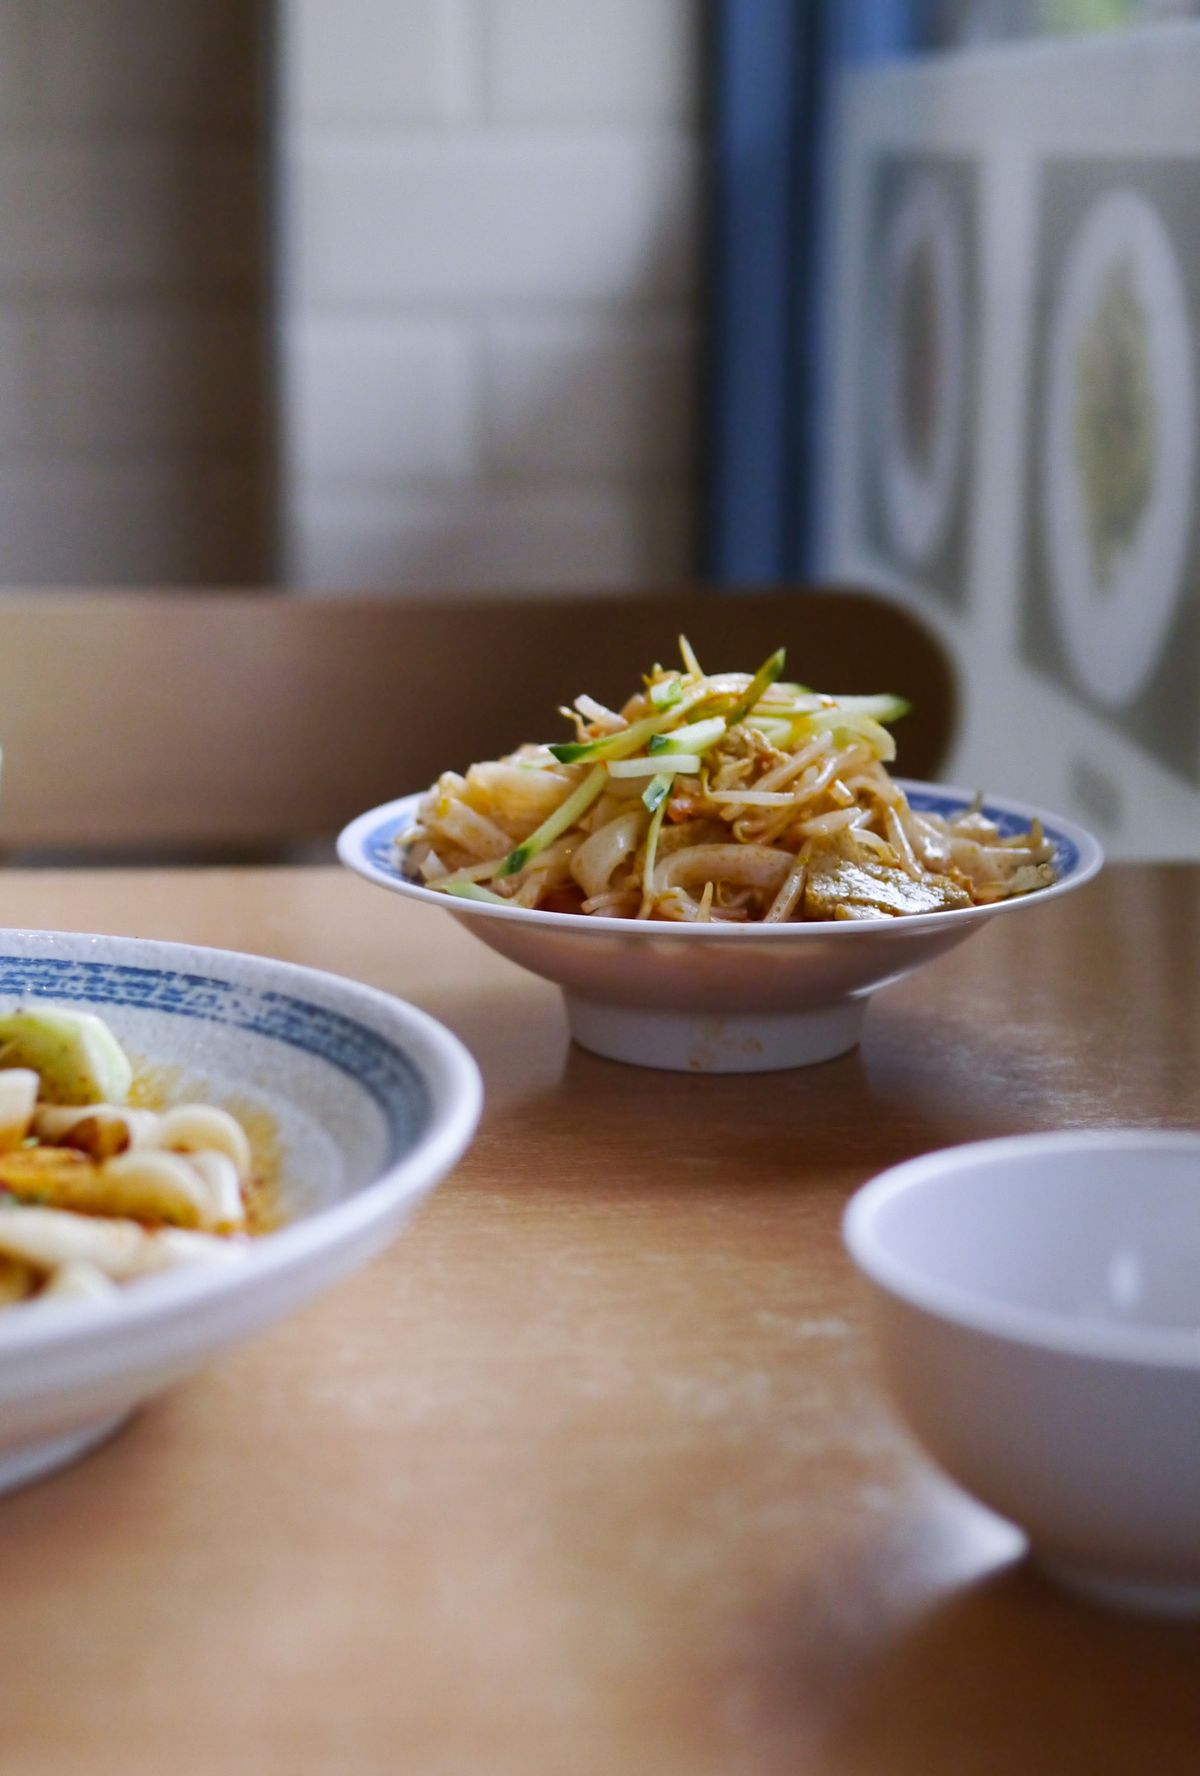 Cold skin noodles at Xi'an Impression, a Xi'an Chinese restaurant in north London